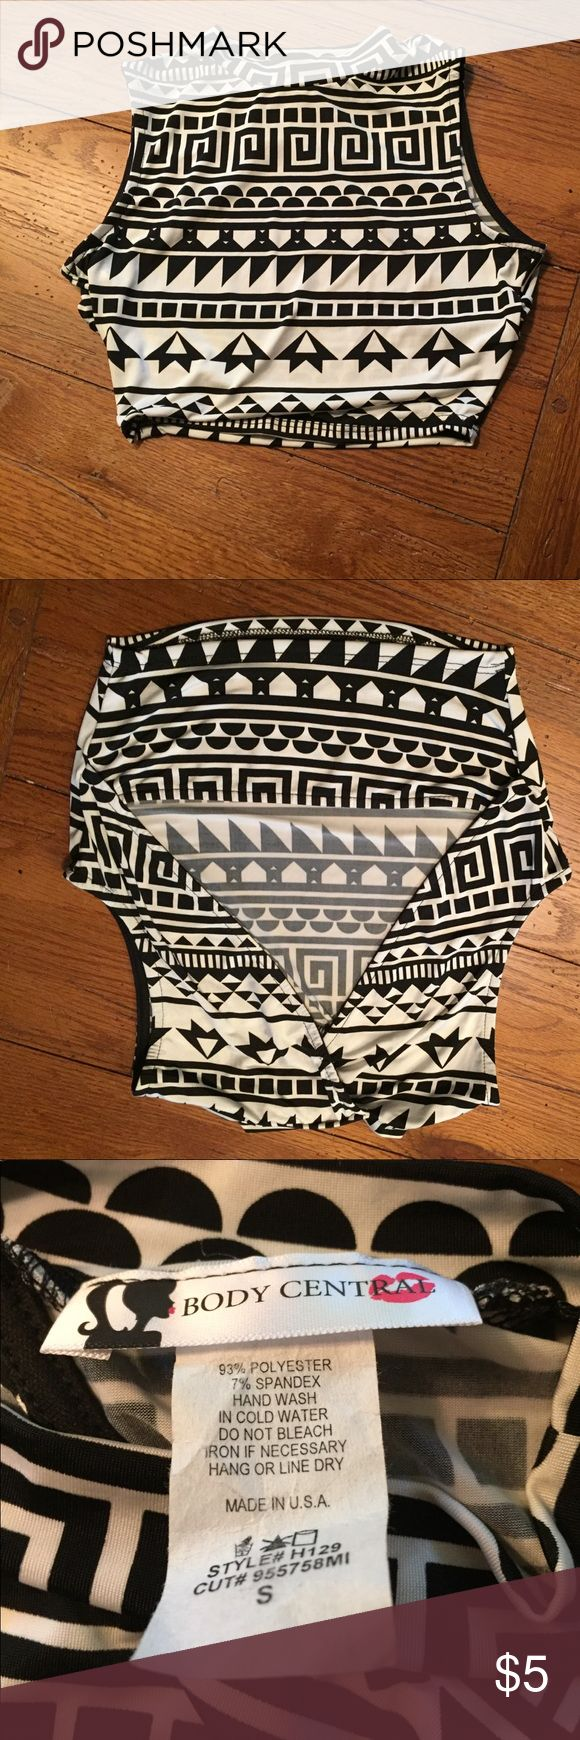 Black and white crop top Black and white crop top from Body Central. Vey soft and satiny. Polyester and spandex. Has triangle opening in back. Size small. Entire closet is BOGO half off and all tops are BOGO free! Body Central Tops Crop Tops